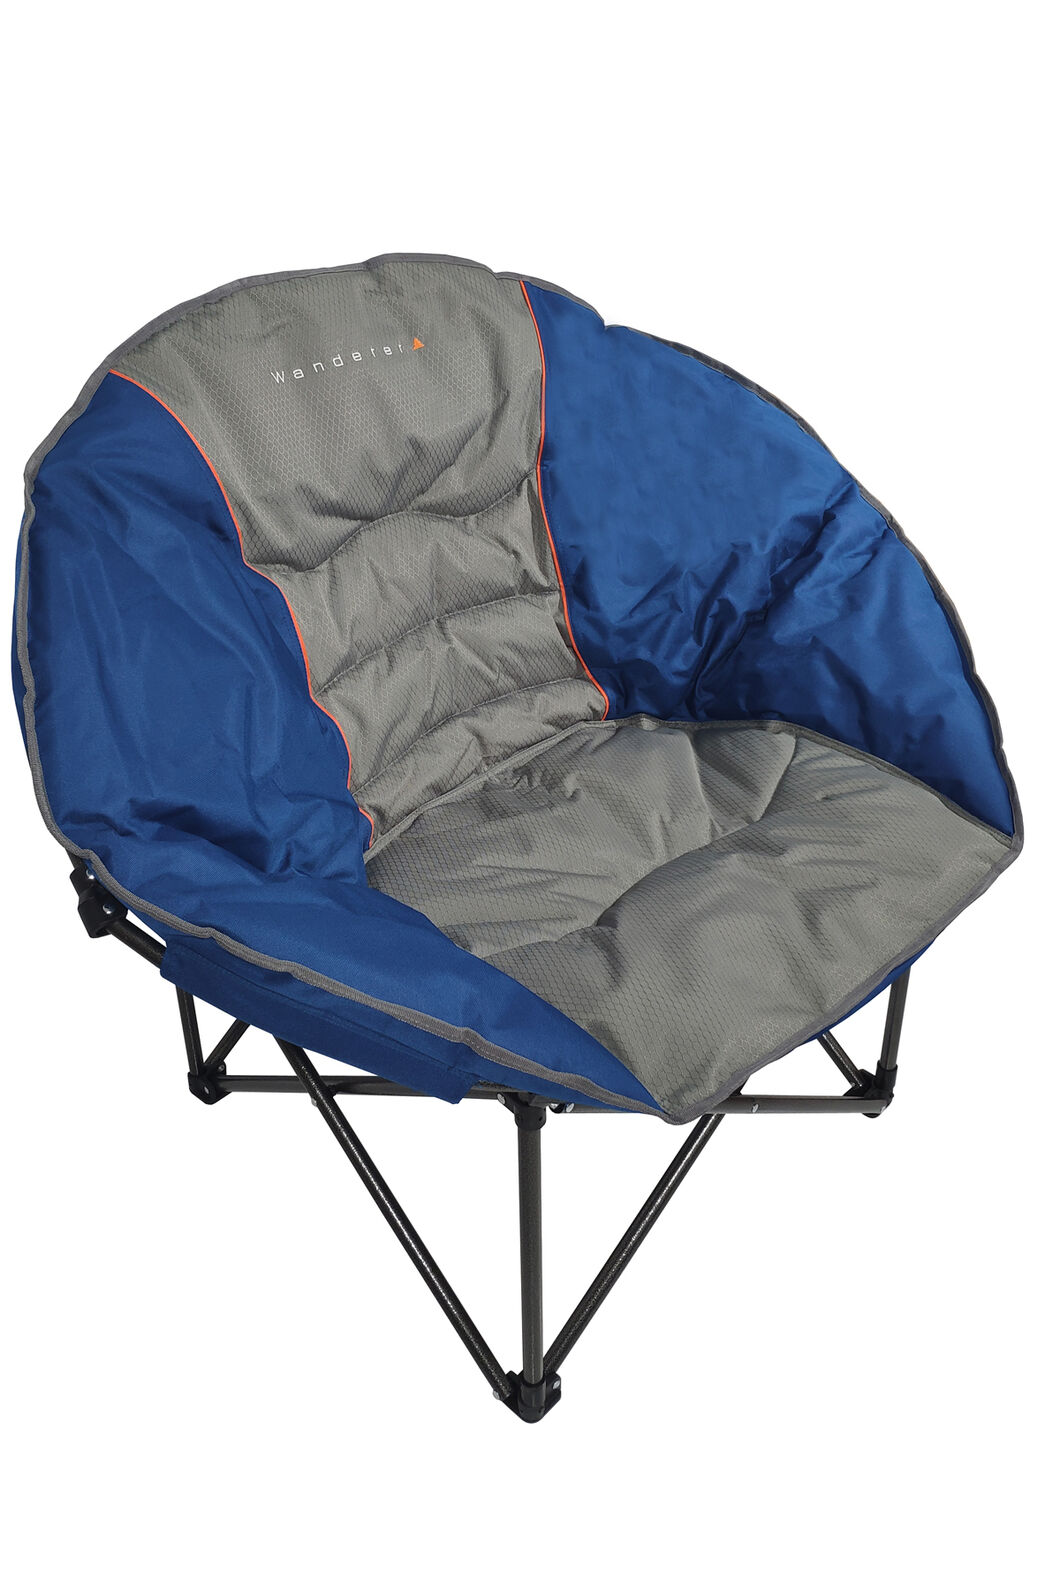 Wanderer Moon Quad Folding Camping Chair, Navy/Grey, hi-res